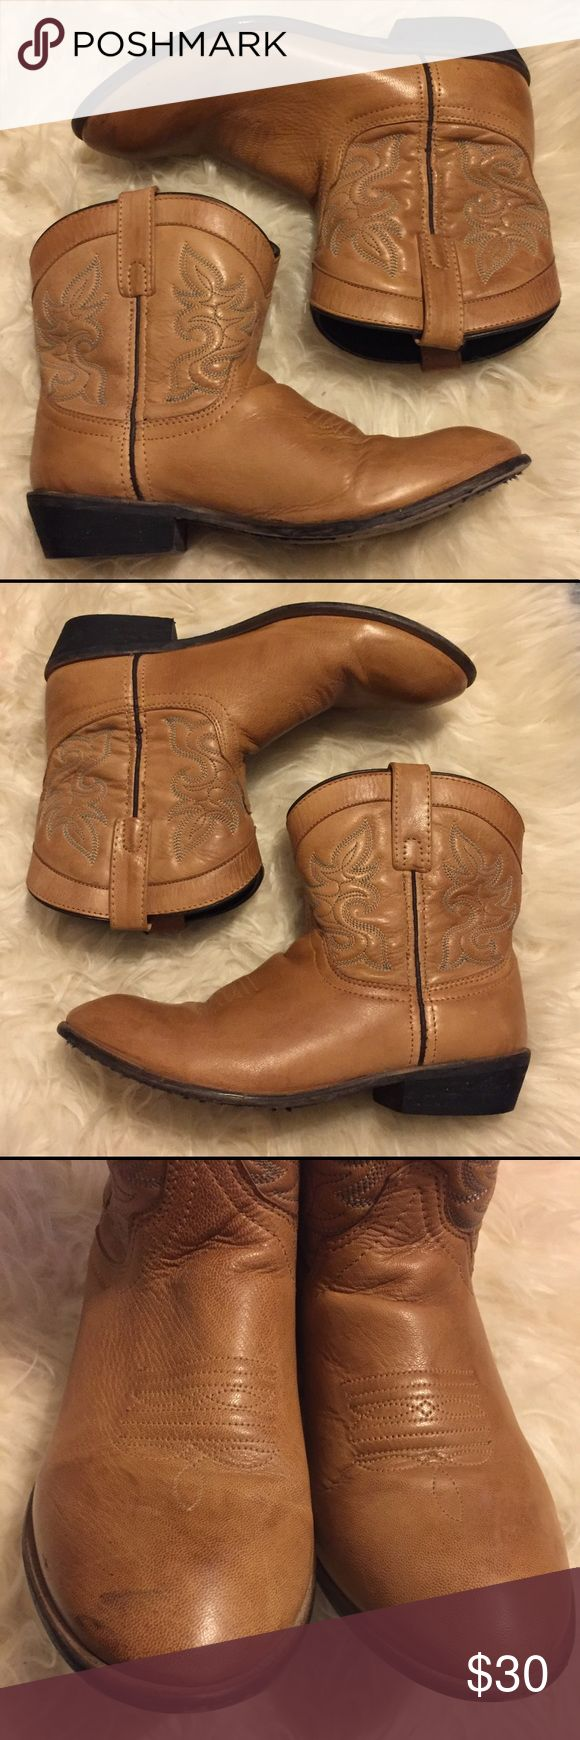 Dingo Tan Short Western Leather Cowboy Boot Brand: Dingo Size: Women's 9 Color: Tan  Style: Short cowboy boot Condition: Preowned (black mark on toes, see photos) Dingo Shoes Heeled Boots